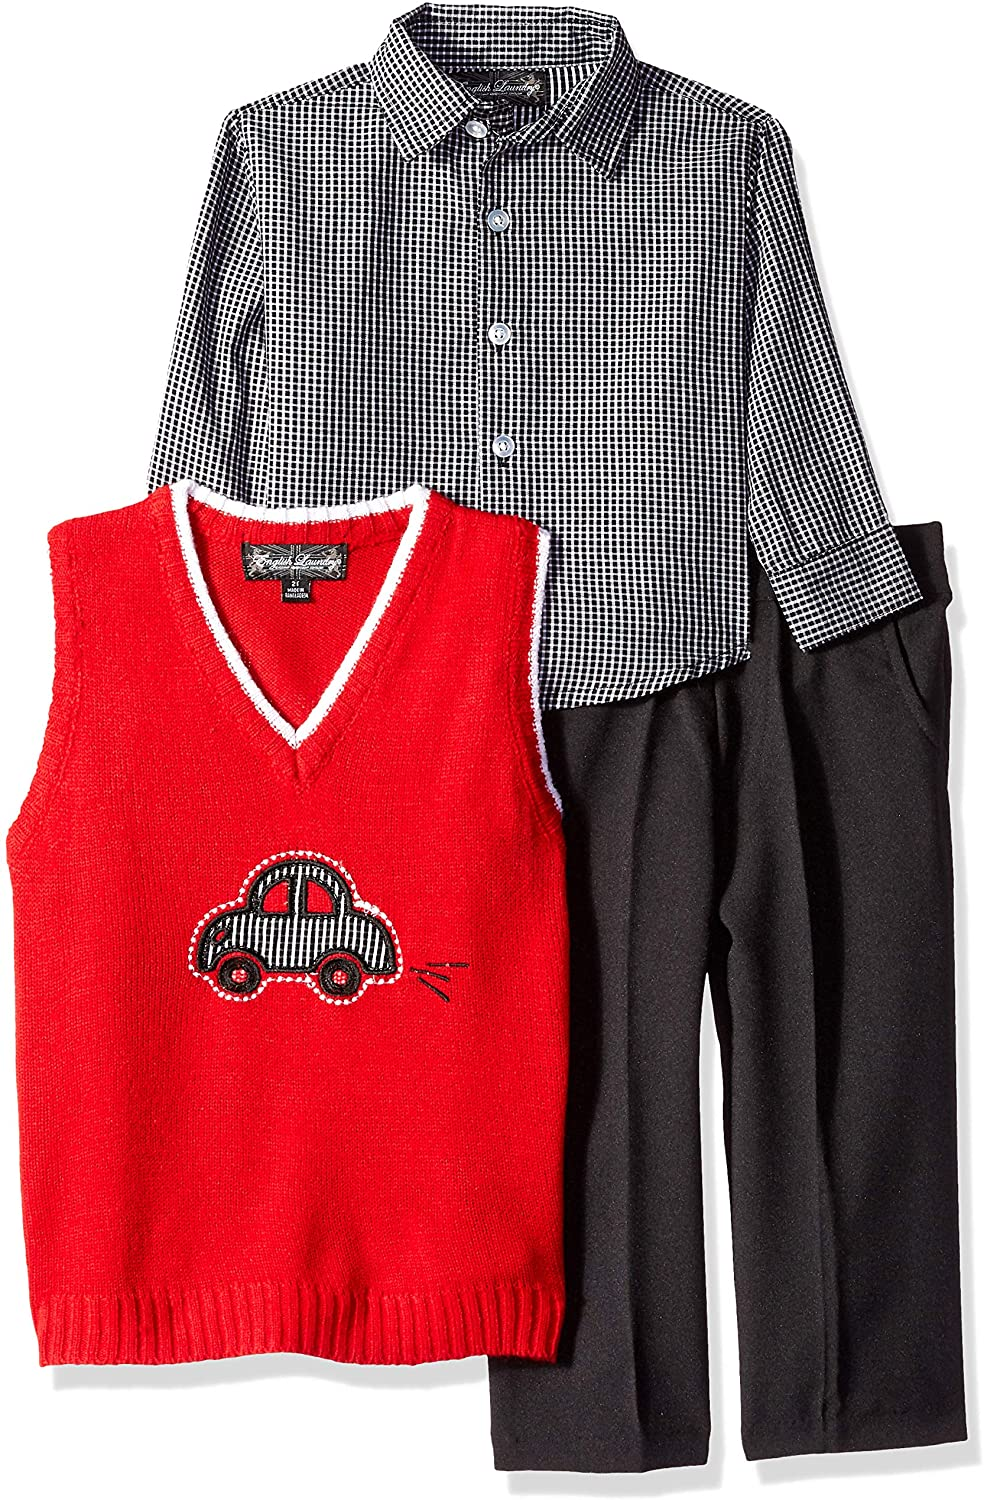 English Laundry Boys' Toddler 3 Piece Sweater Vest, Woven Sport Shirt and Pant